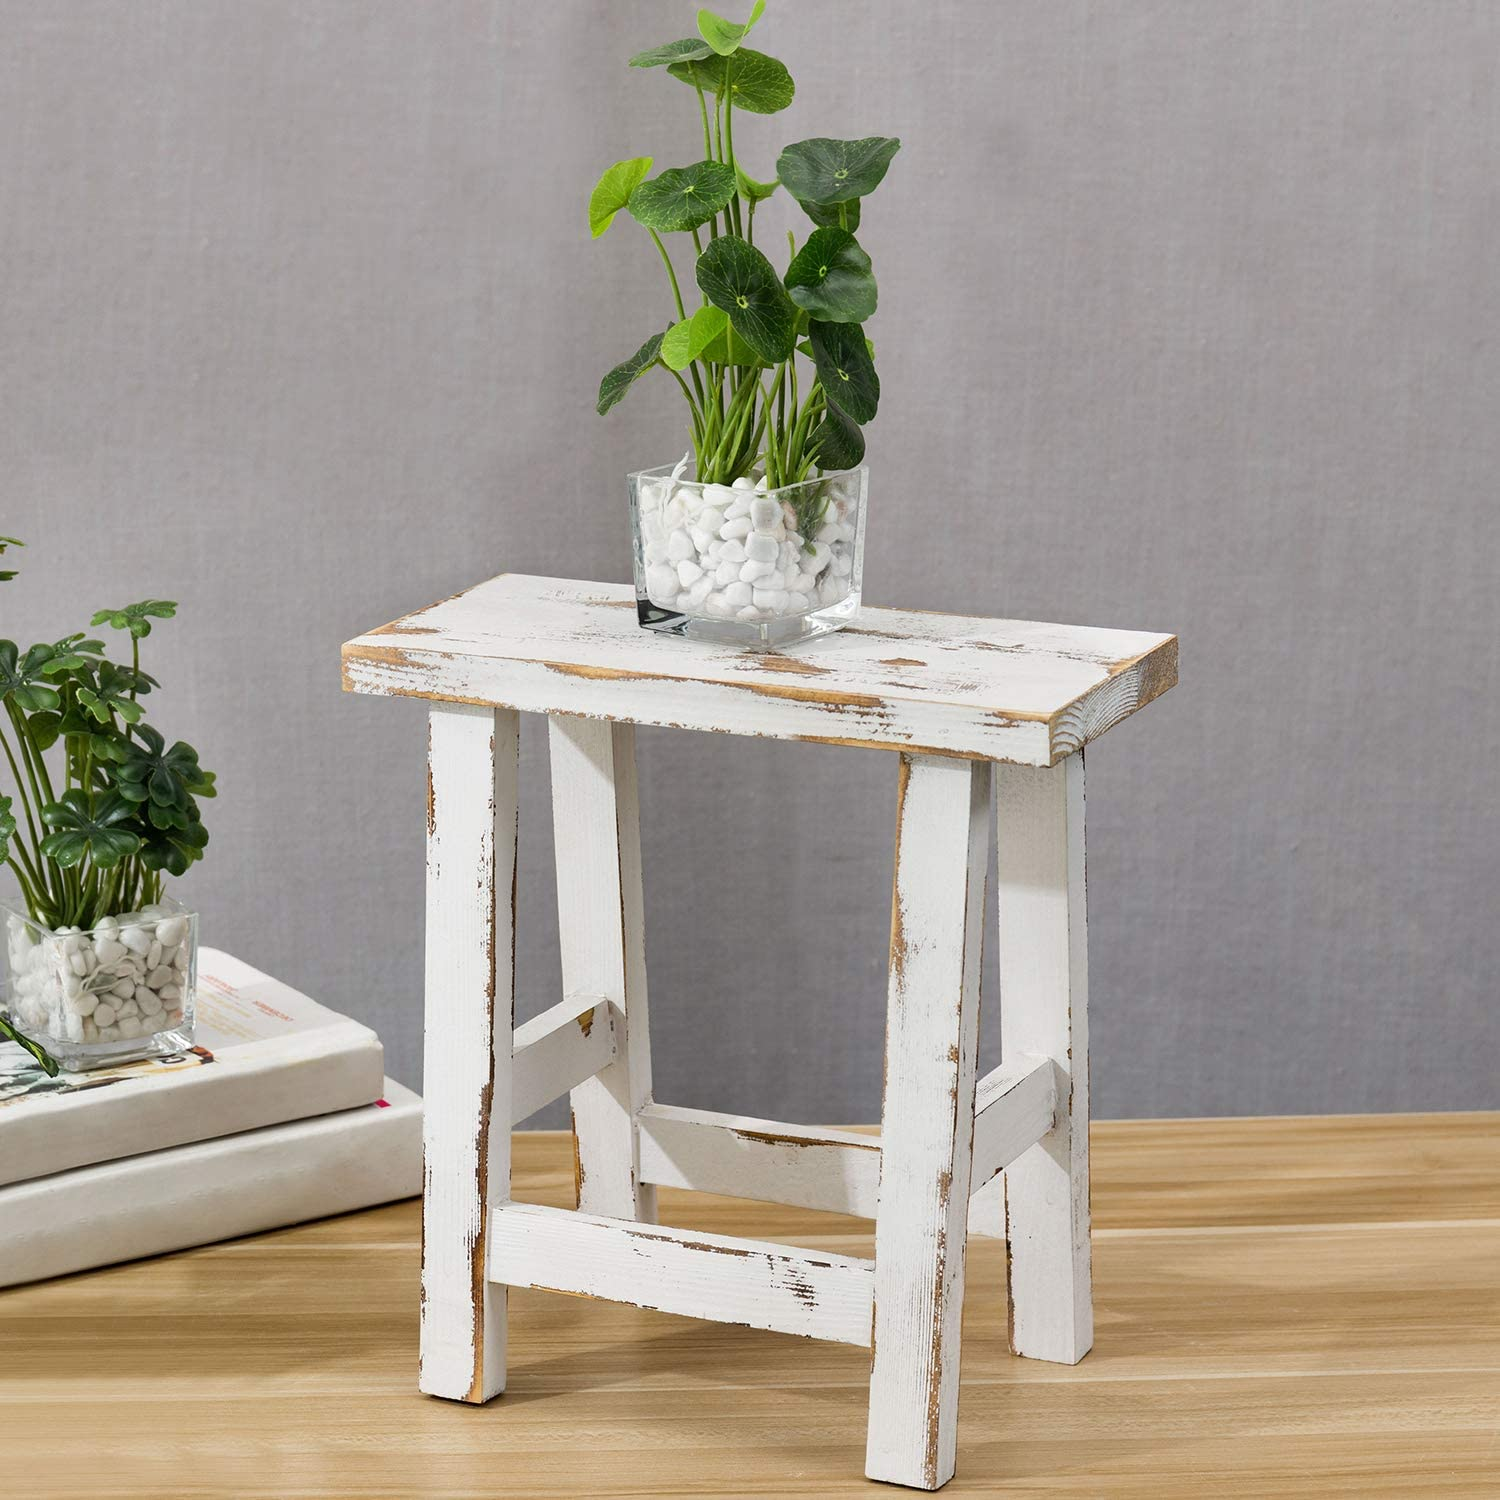 MyGift Decorative Whitewashed Solid Wood Accent Table/Mini Stool Display Stand